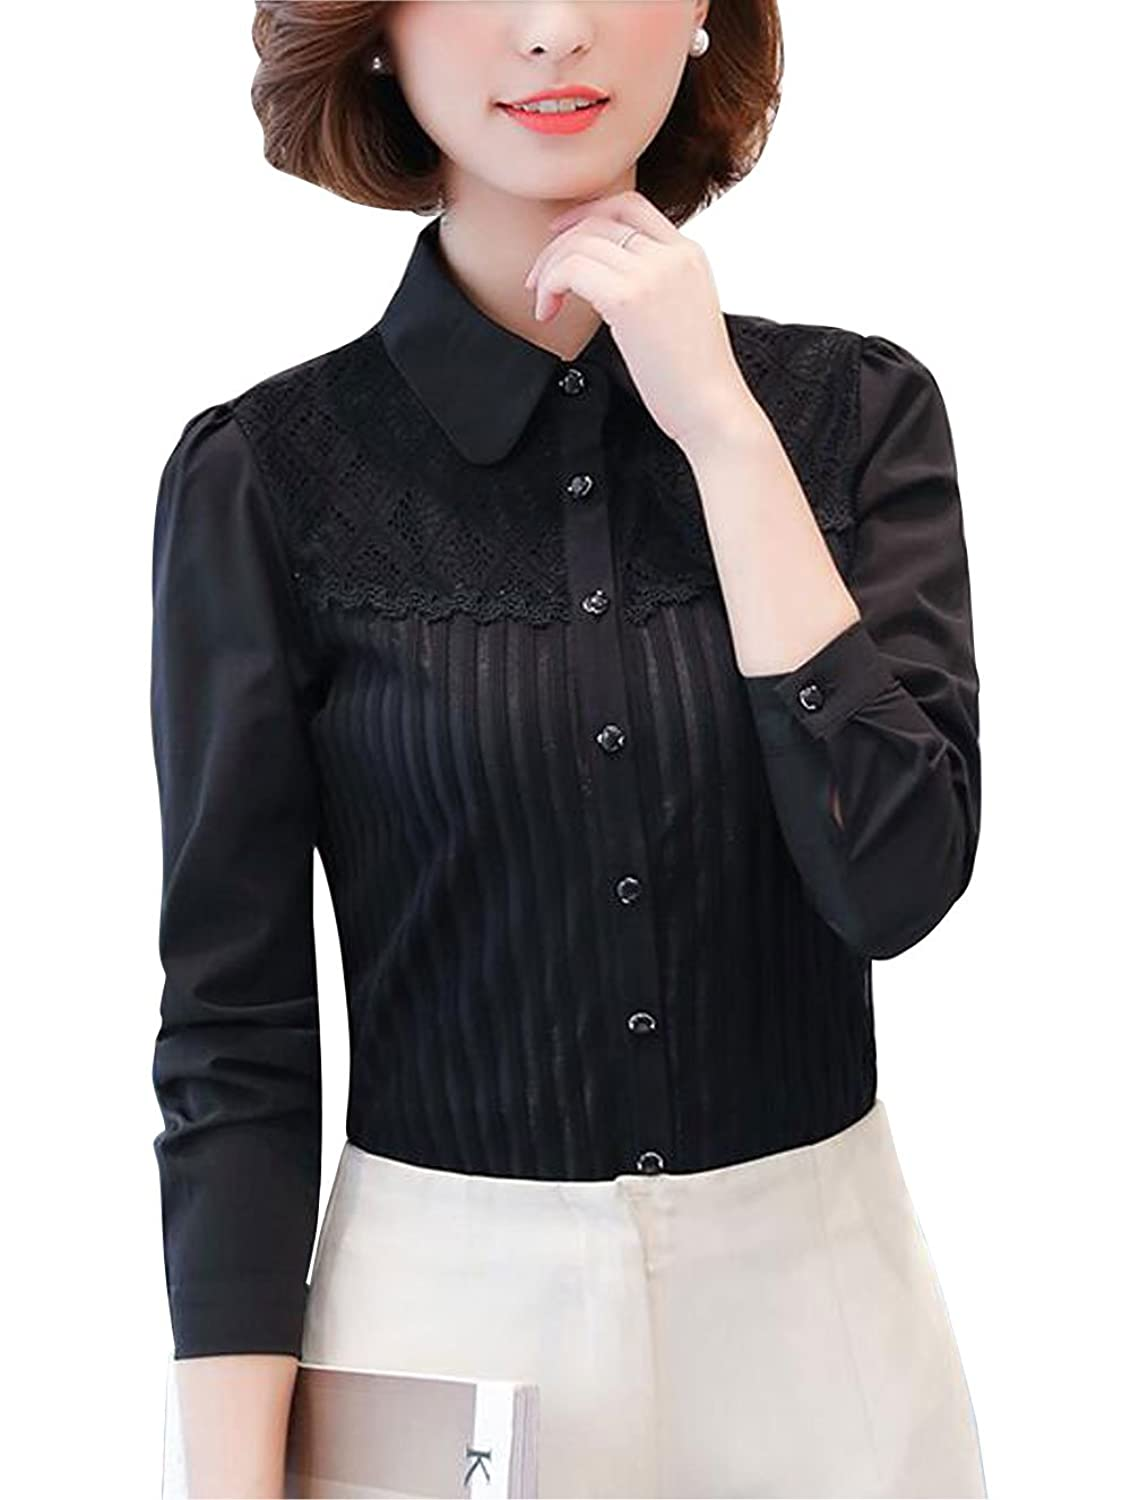 Edwardian Blouses |  Lace Blouses & Sweaters Double Plus Open DPO Womens Vintage Collared Pleated Button Down Shirt Long Sleeve Lace Stretchy Blouse $23.59 AT vintagedancer.com